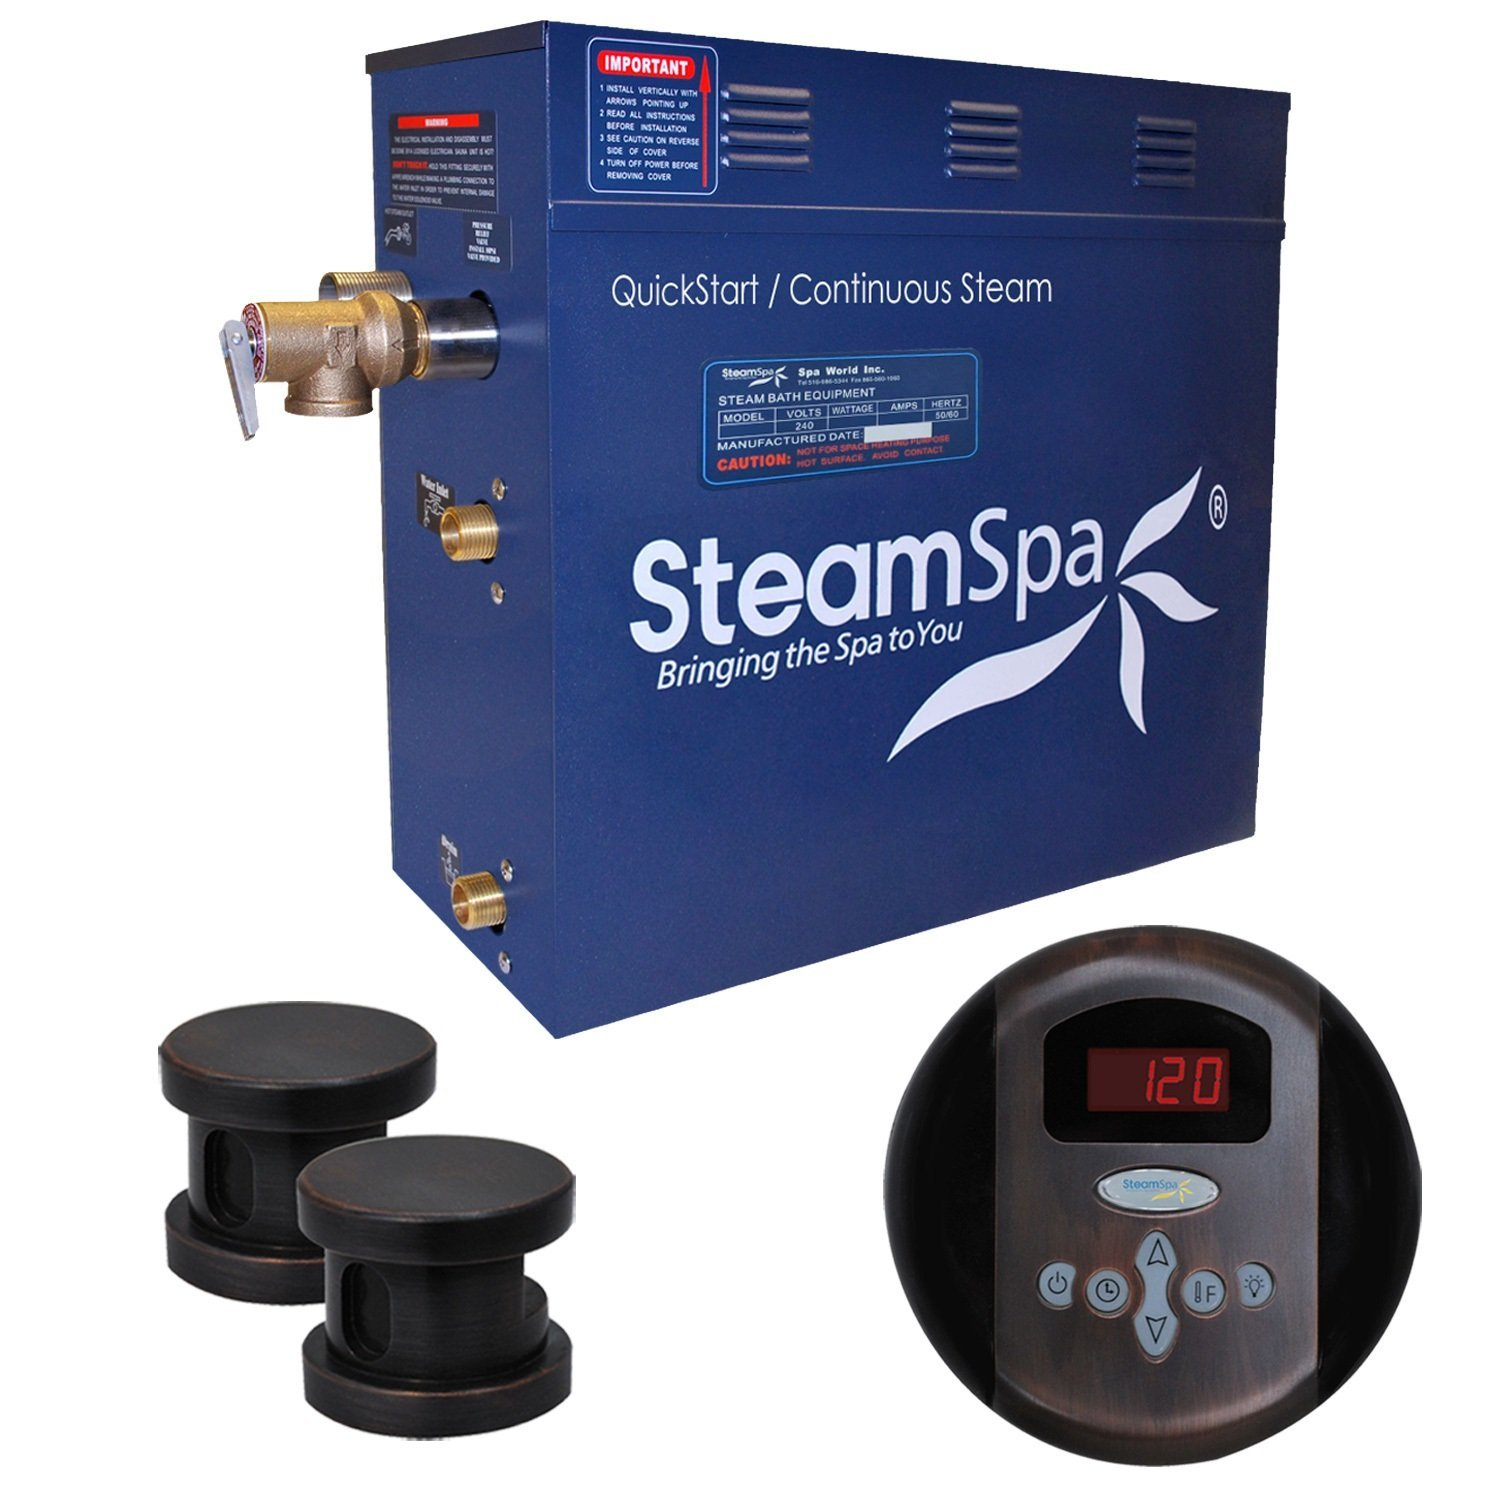 Steam Spa OA1050OB Oasis 10.5 KW Quick Start Acu-Steam Bath Generator Package, Oil Rubbed Bronze by Steam Spa